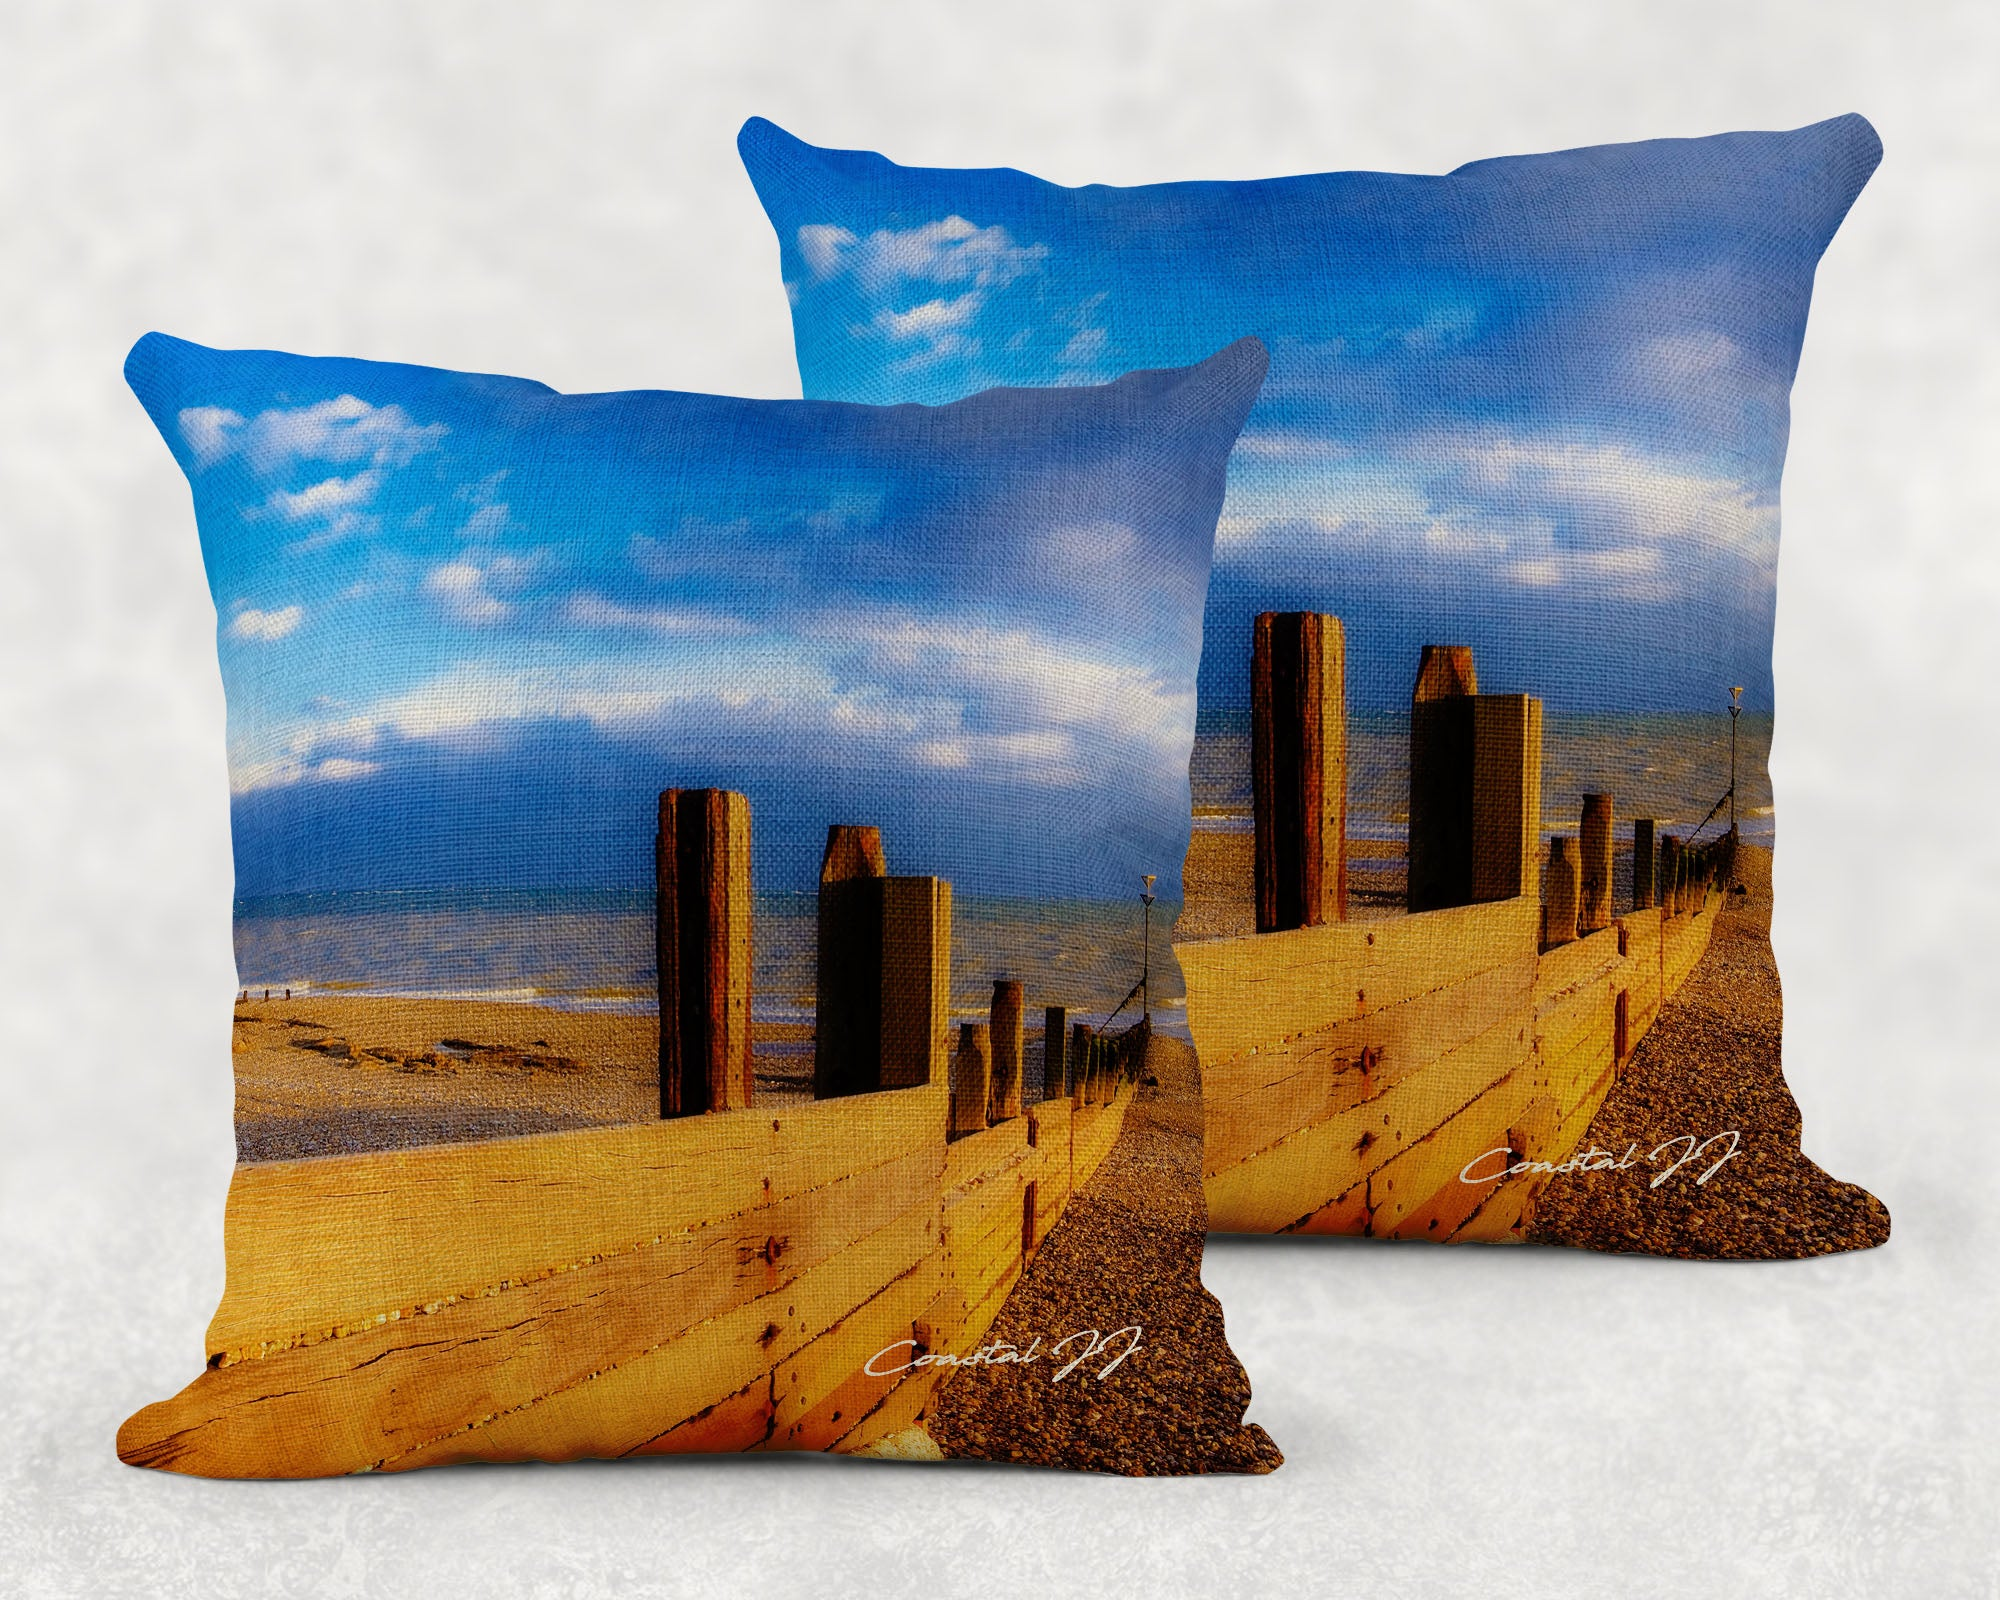 'A Warm Evening in Spring' - Large Sofa Cushion